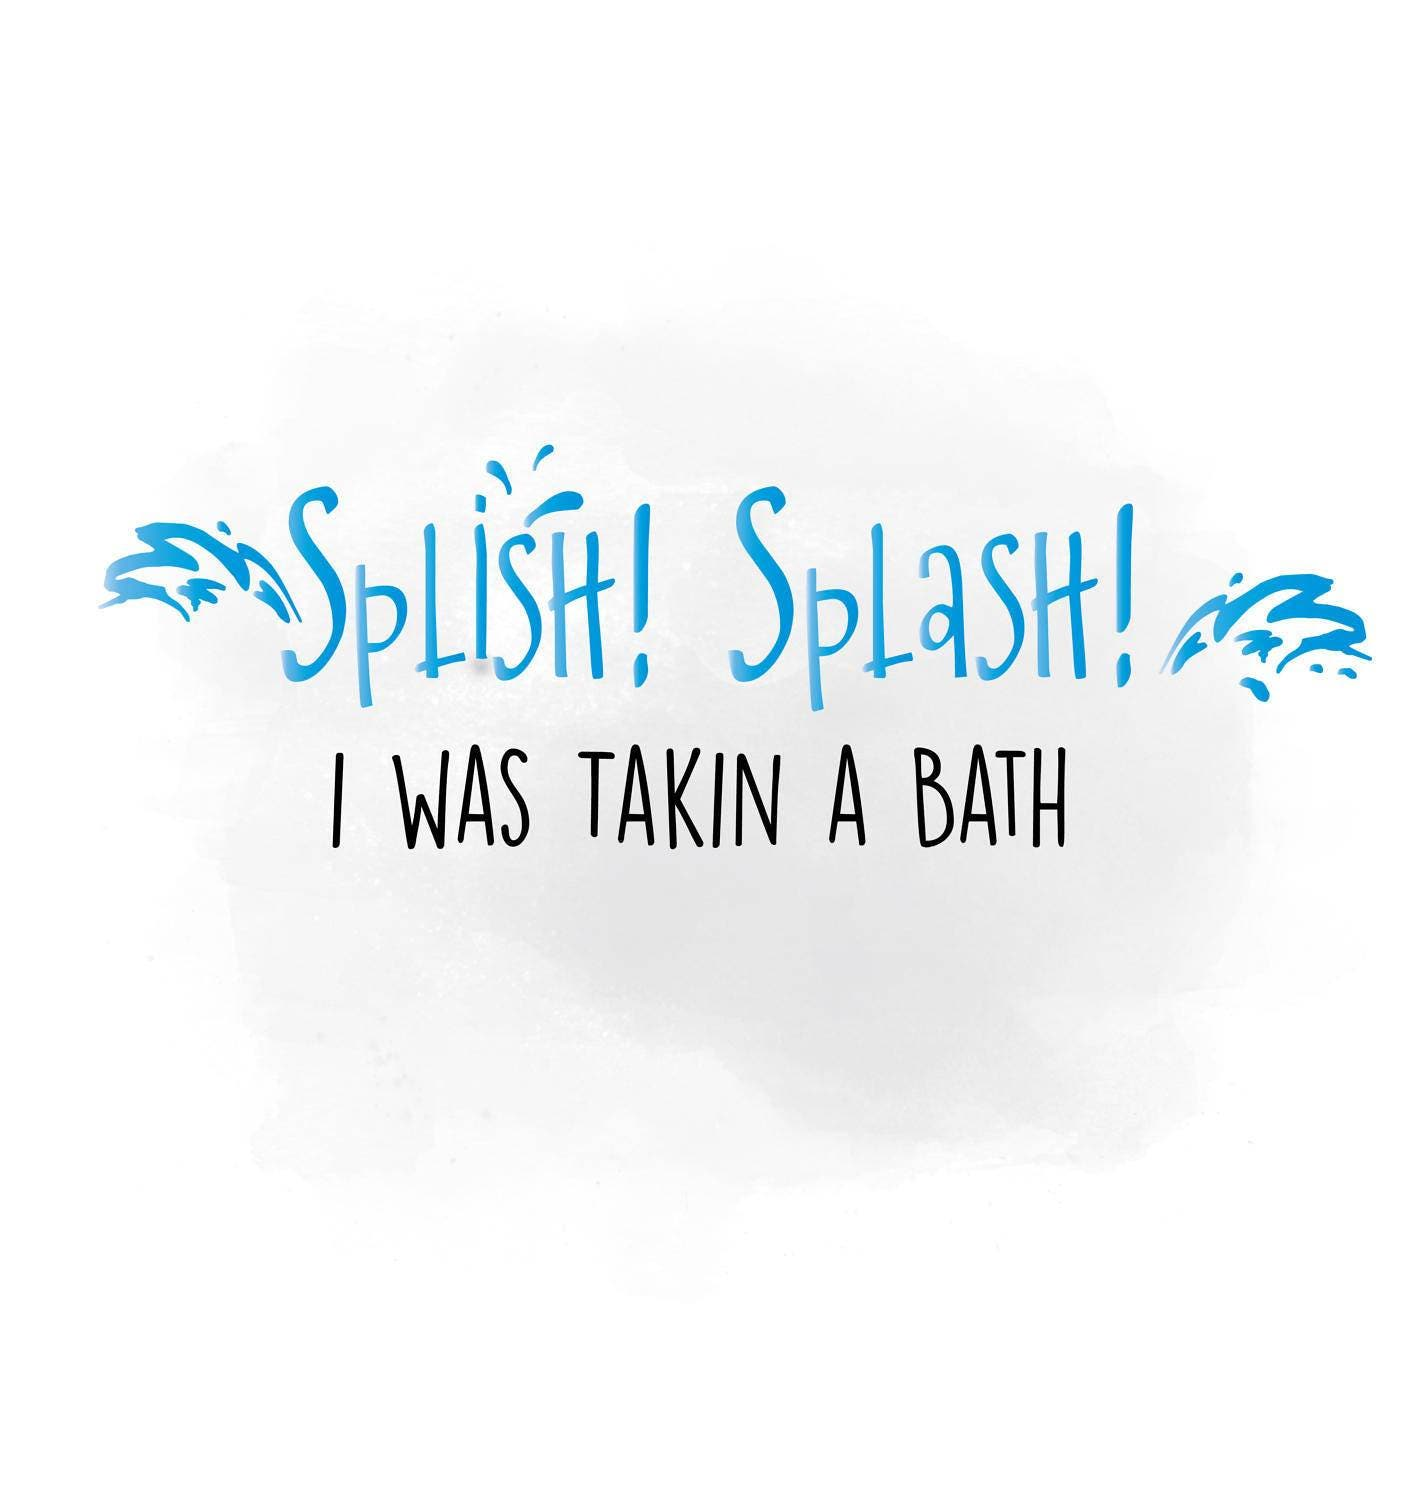 Splish splash bath SVG clipart, Bathroom Quote Word Art ...